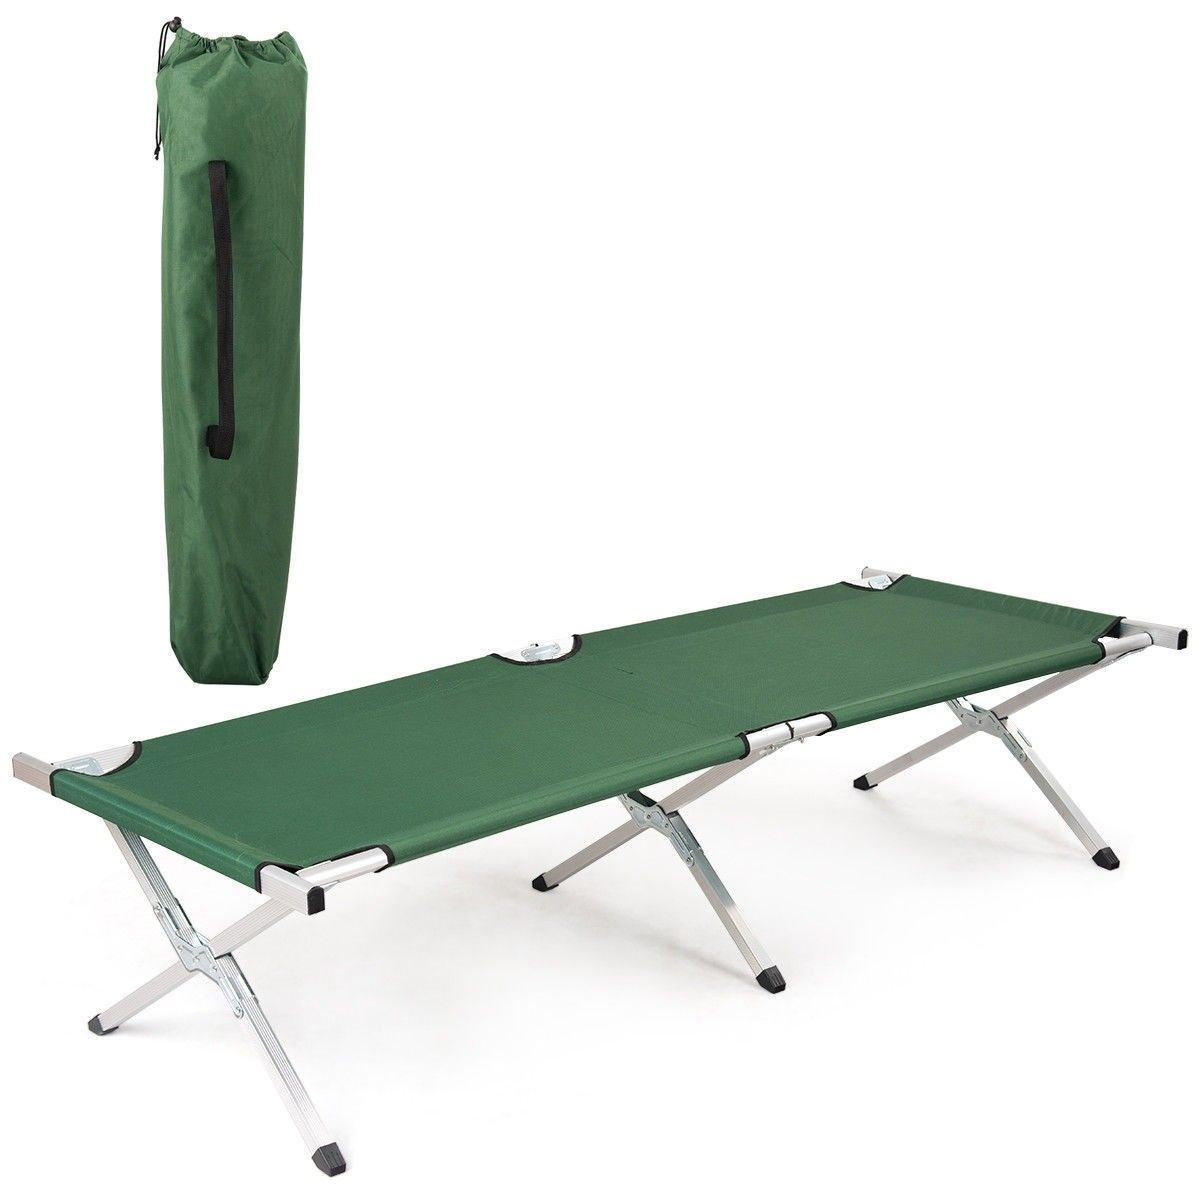 - Foldable Camping Hiking Bed Portable Military Cot Carrying Bag